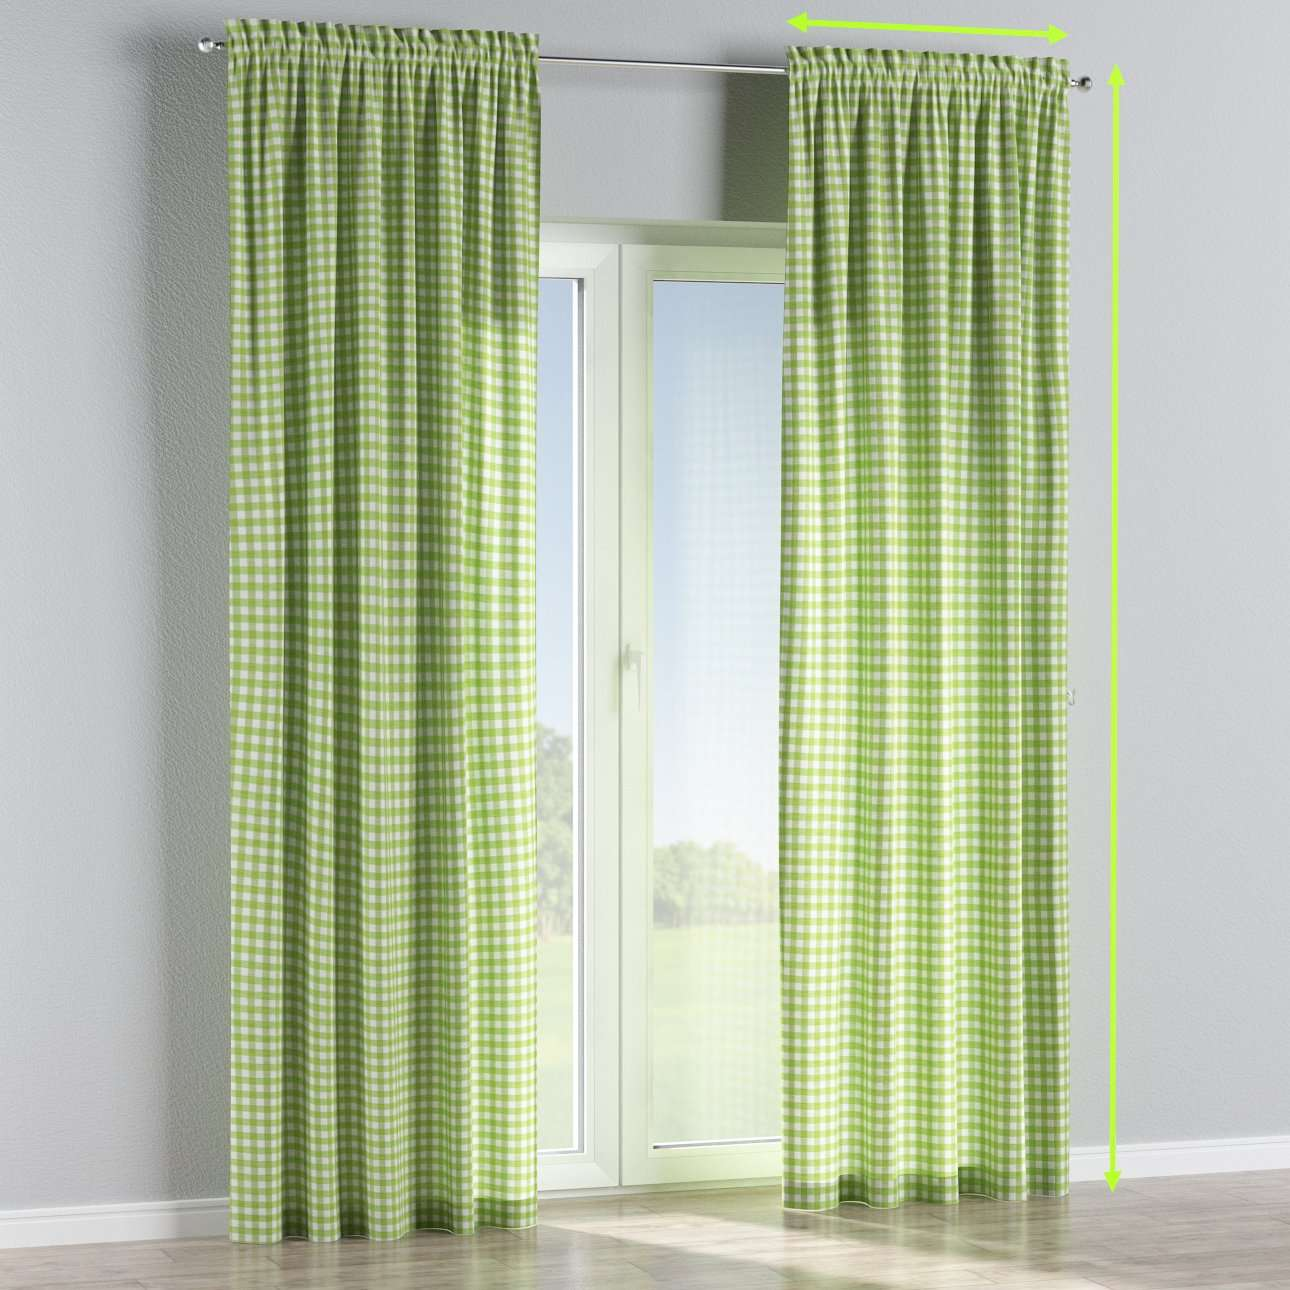 Slot and frill lined curtains in collection Quadro, fabric: 136-34